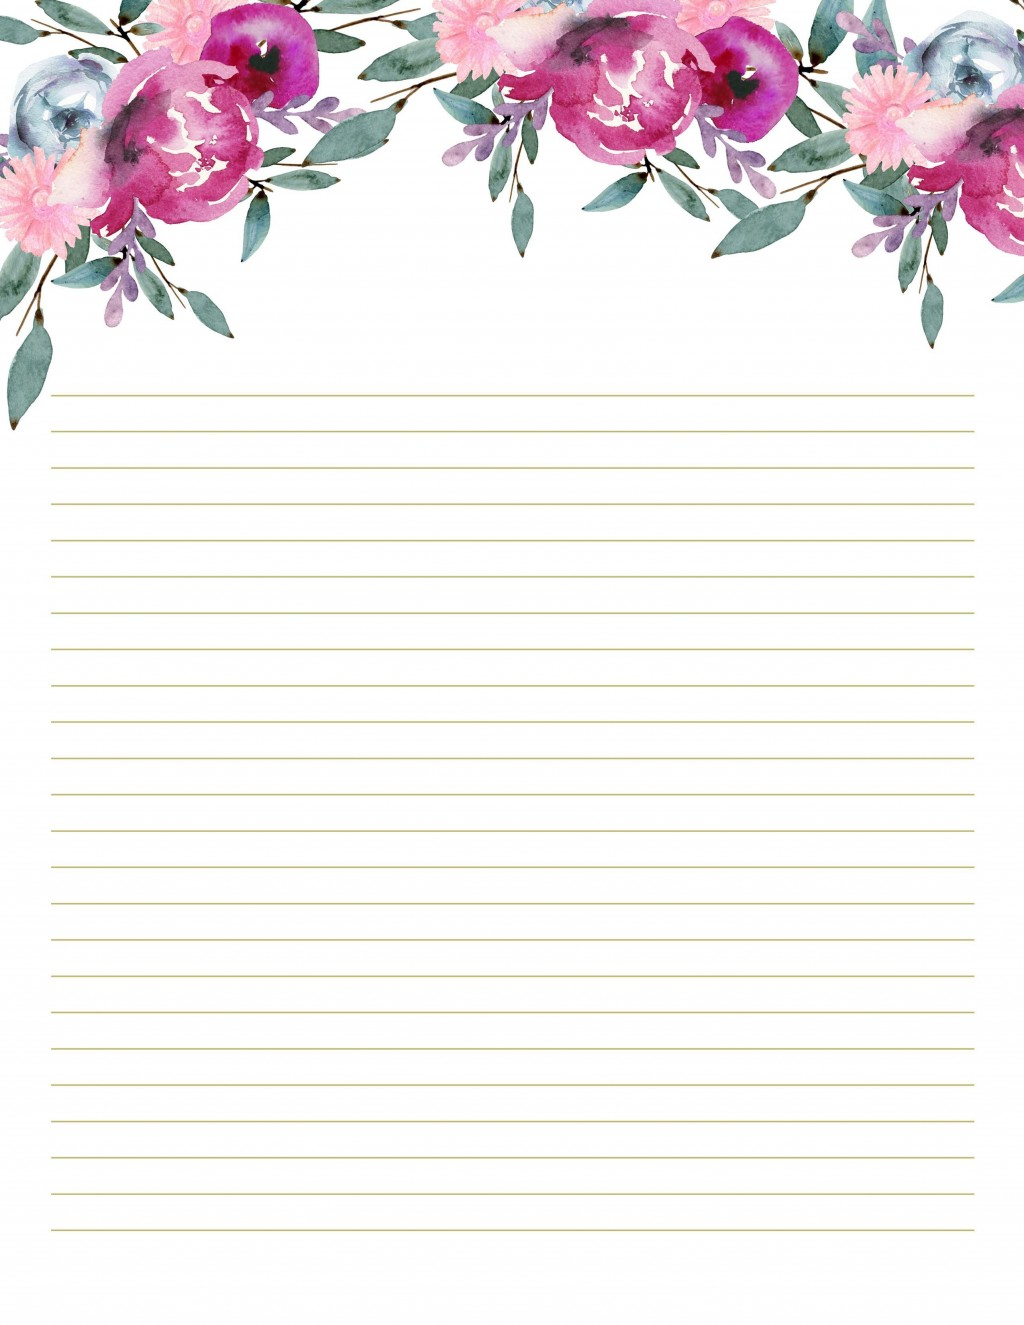 002 Unique Free Printable Stationery Paper Template High Resolution  TemplatesLarge